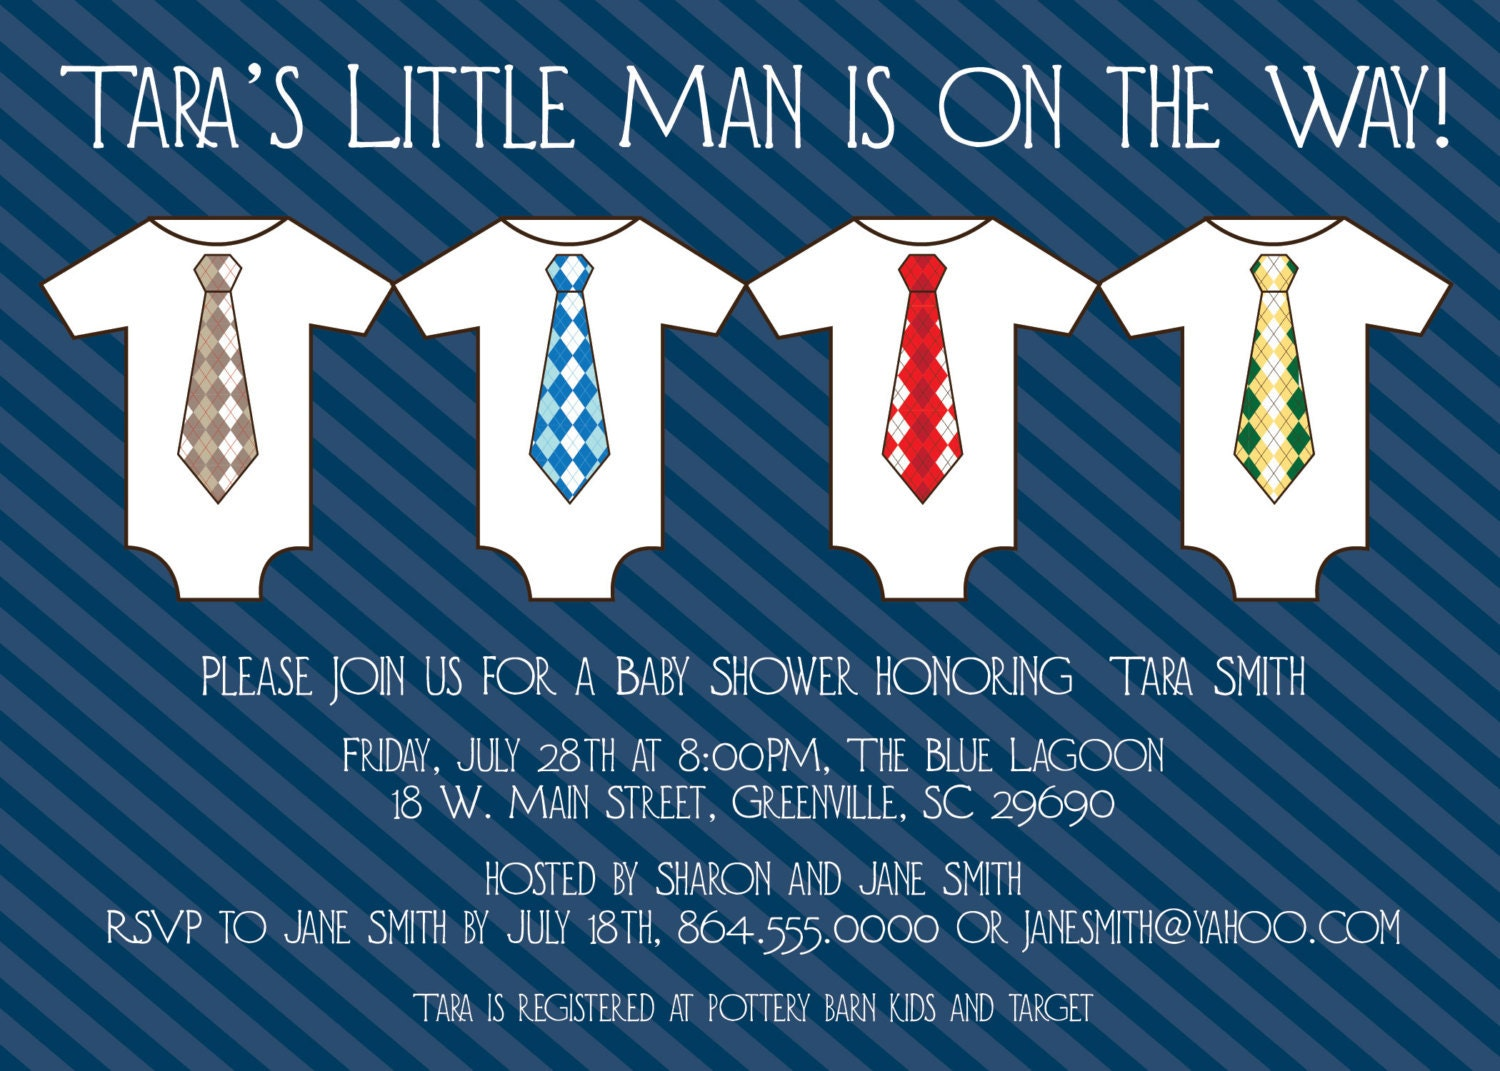 Little Man Invitations Baby Shower as great invitations ideas